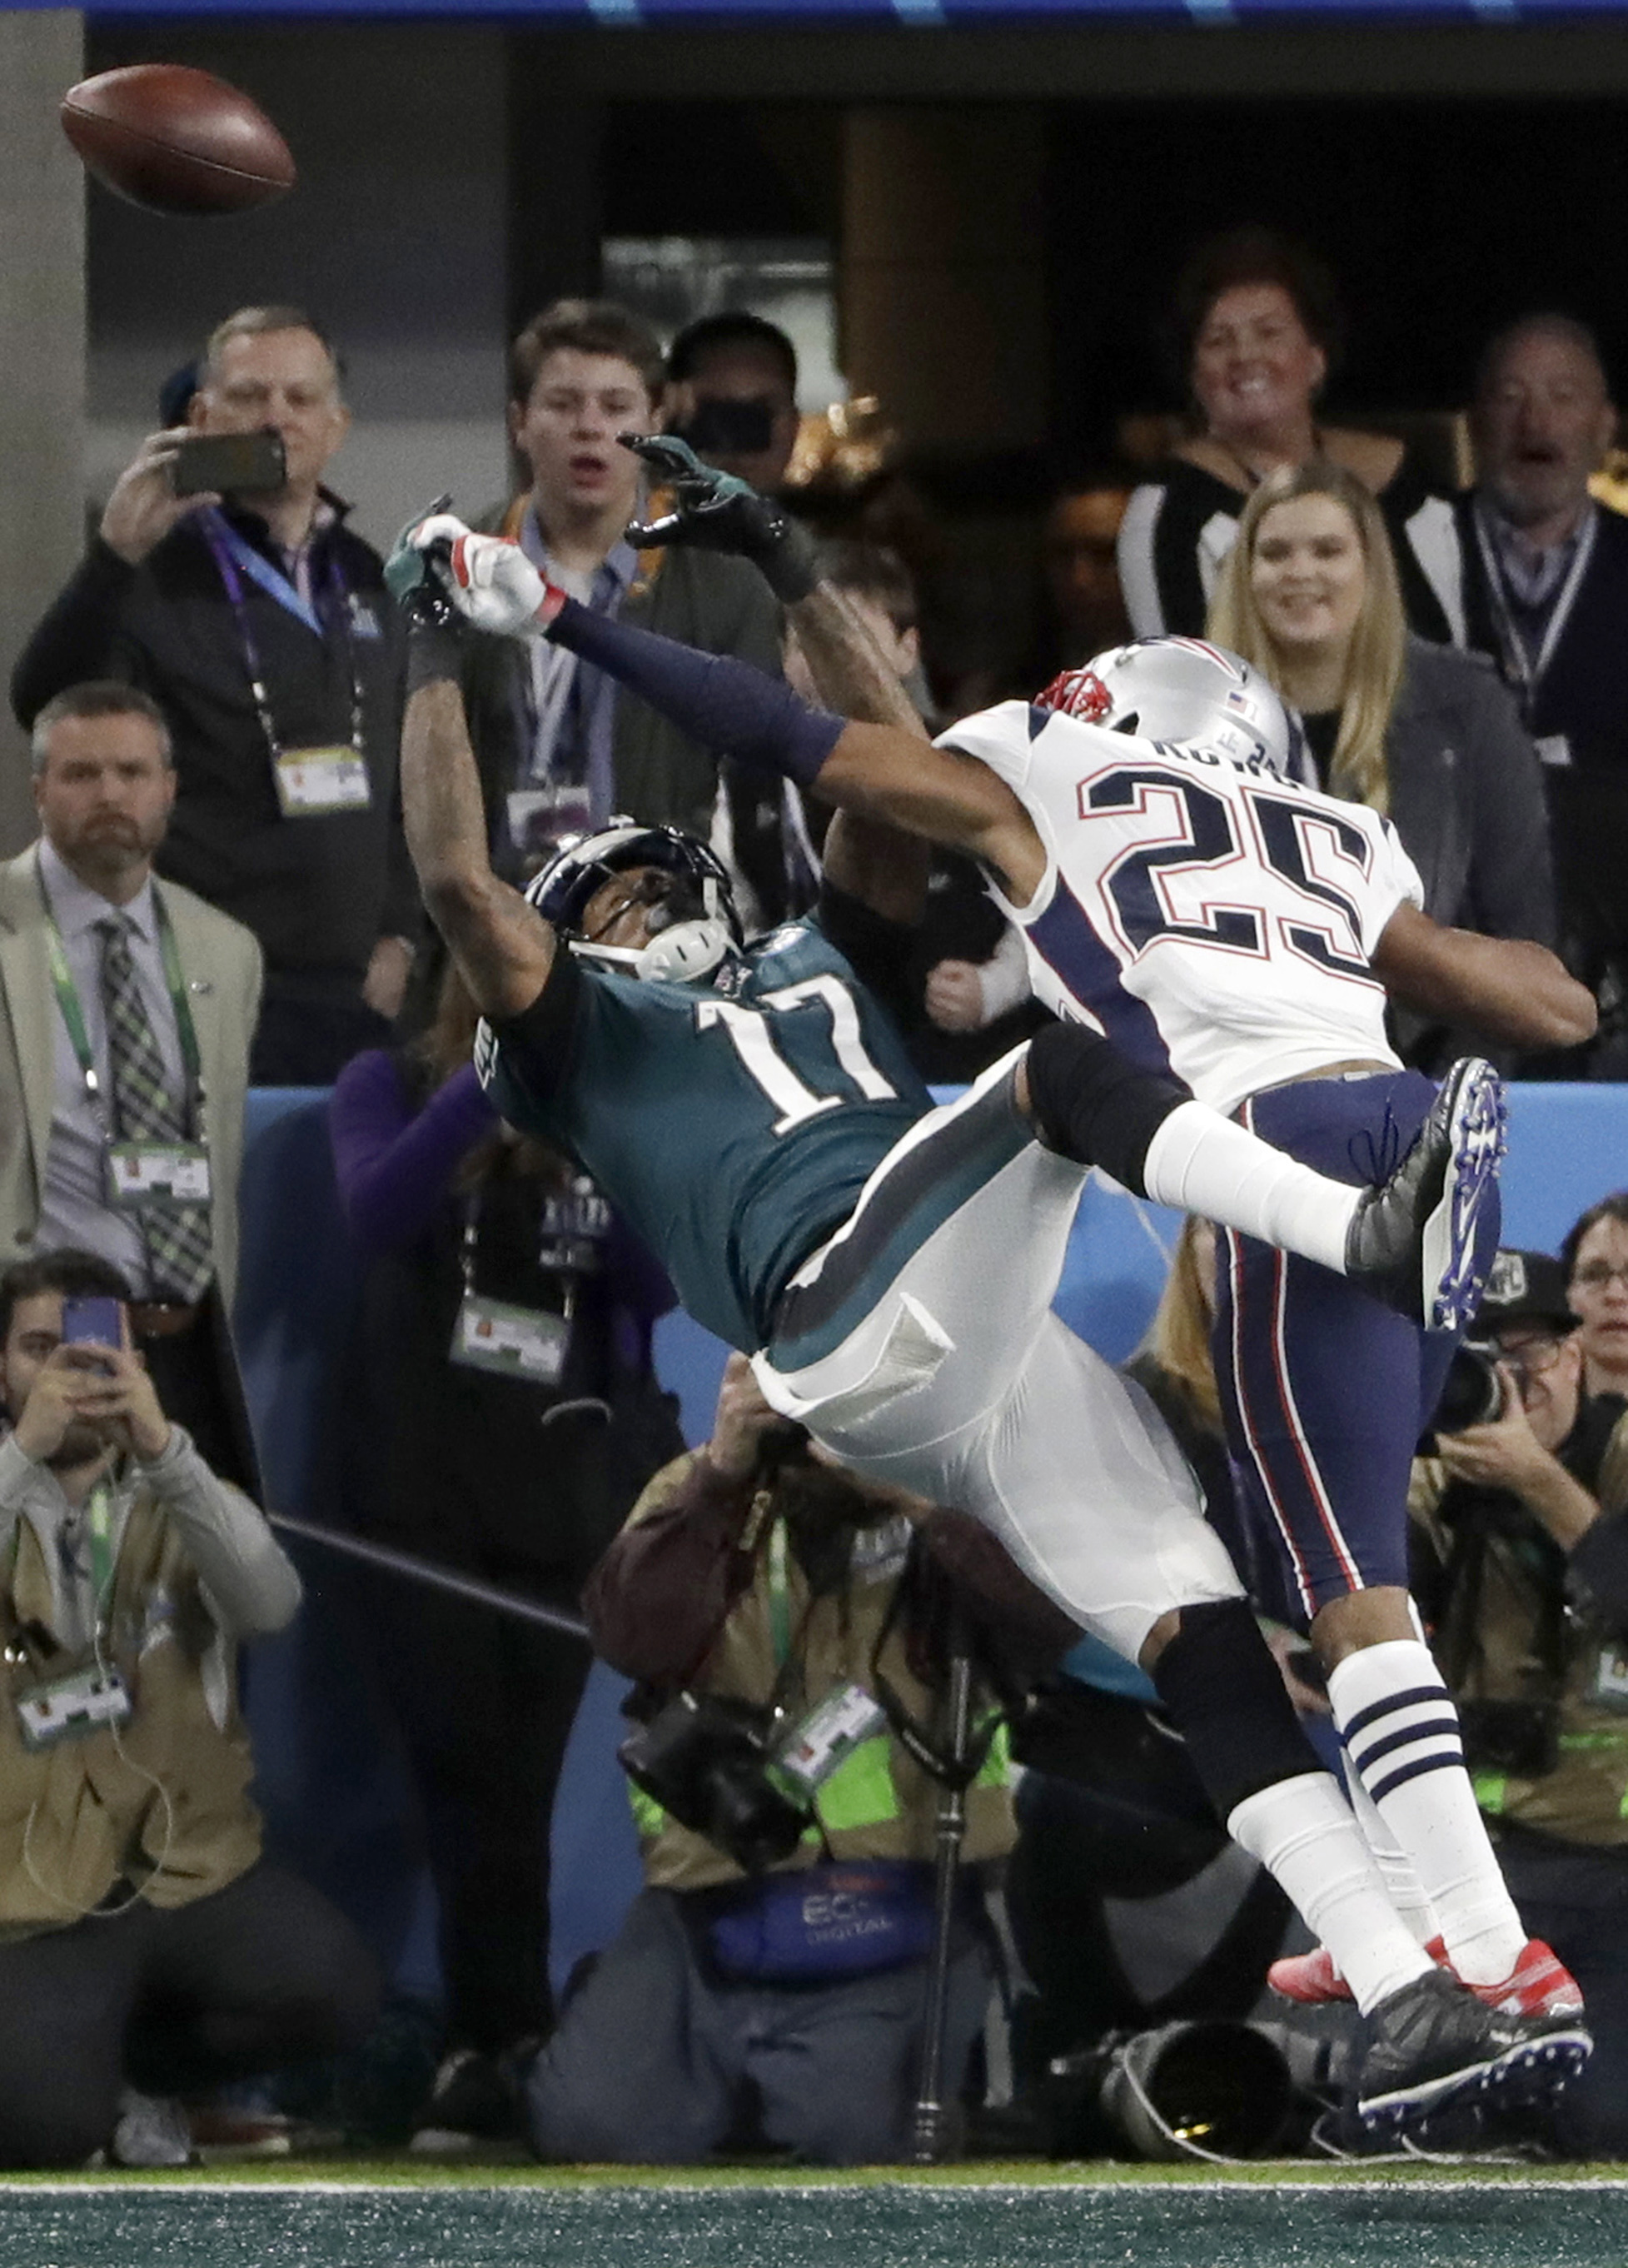 <div class='meta'><div class='origin-logo' data-origin='AP'></div><span class='caption-text' data-credit='AP Photo/Chris O'Meara'>New England Patriots cornerback Eric Rowe (25) breaks up a pass in the end zone intended for Philadelphia Eagles wide receiver Alshon Jeffery (17).</span></div>